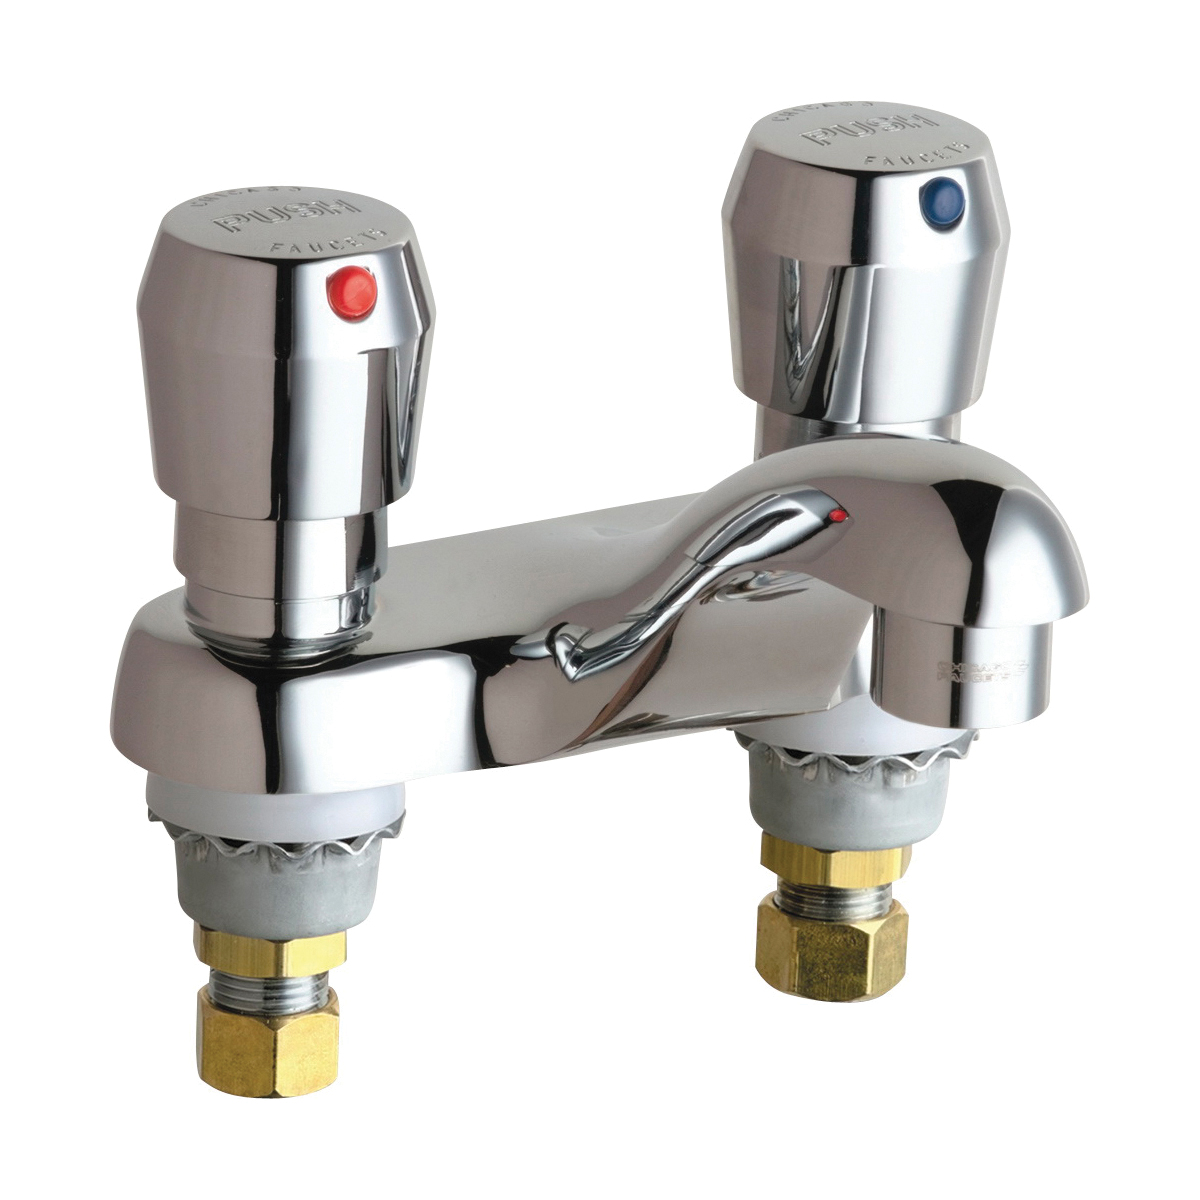 Chicago Faucet® 802-V665ABCP Lavatory Sink Faucet, Chrome Plated, 2 Handles, 2.2 gpm